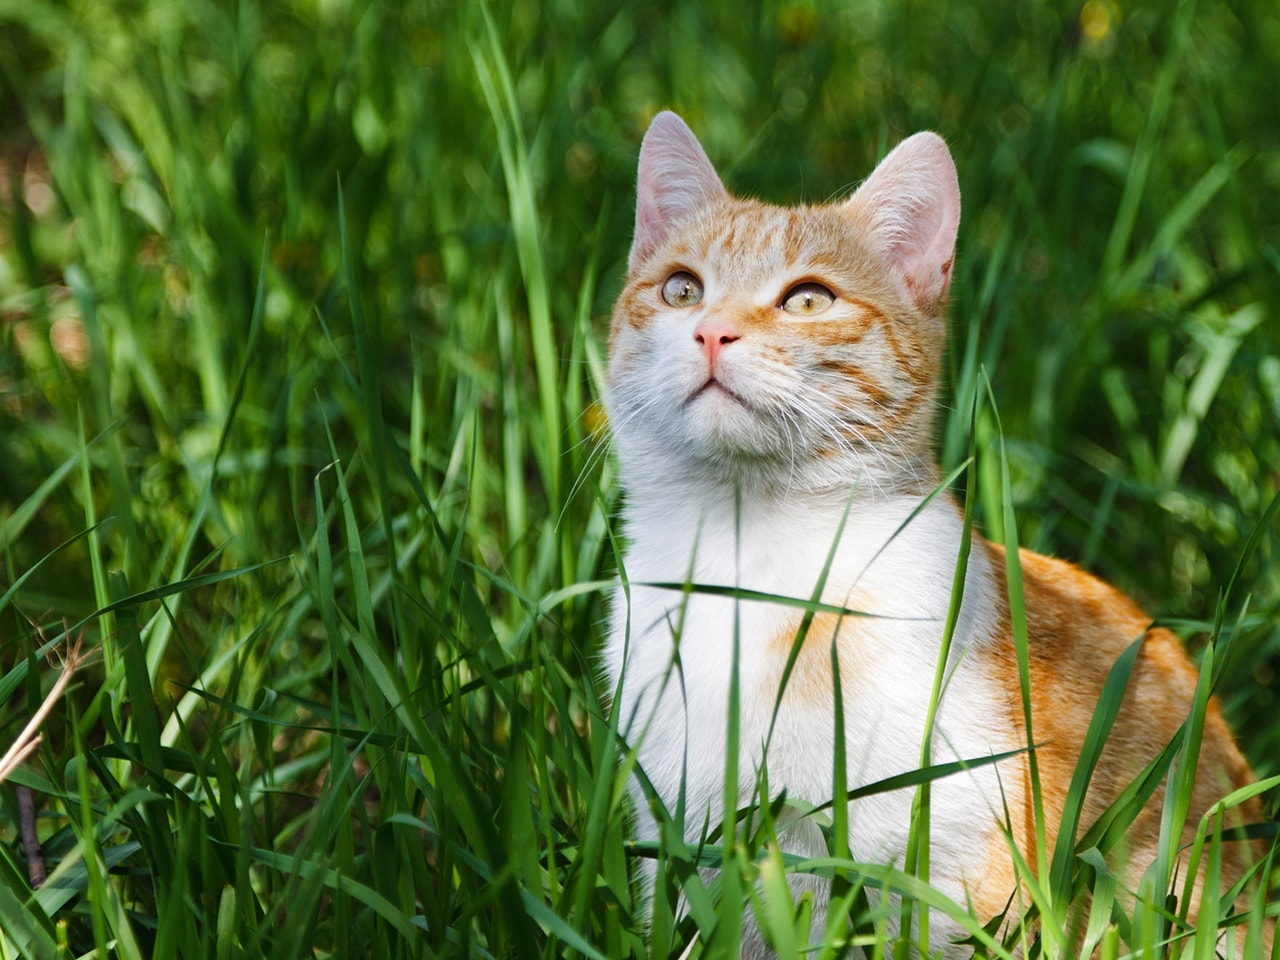 Young kitten in grass outdor shot at sunny day